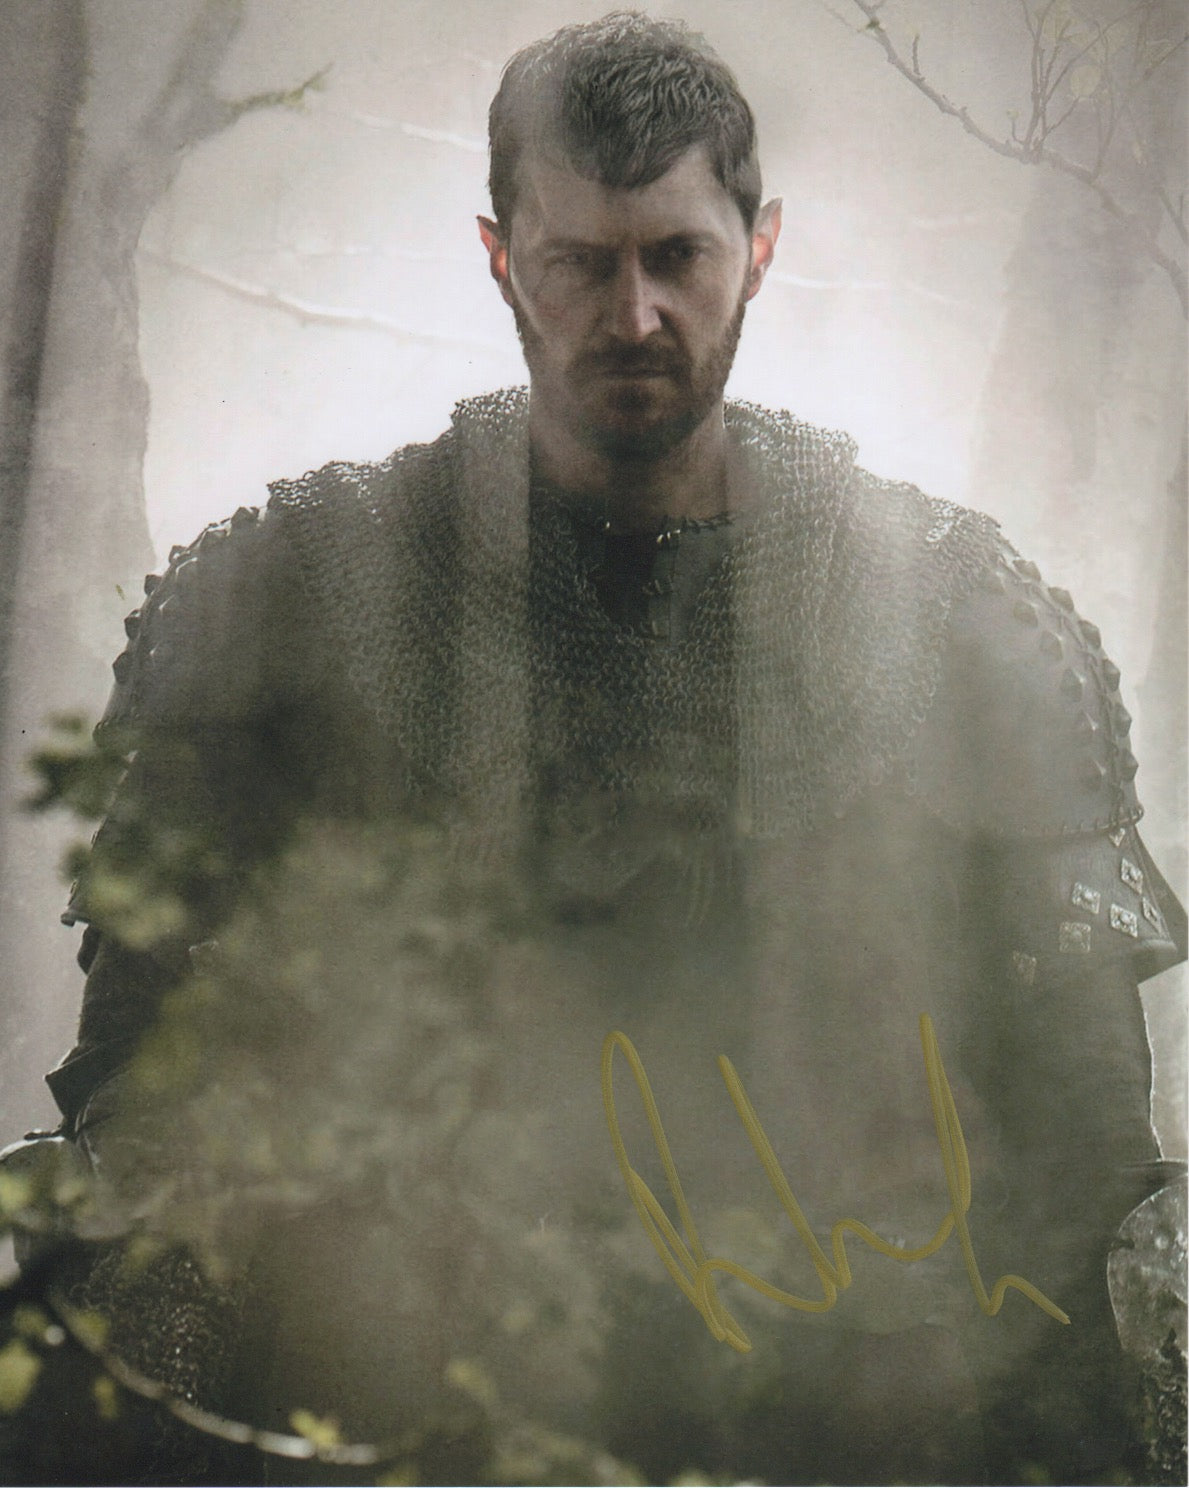 Richard Armitage Signed Autograph 8x10 Pilgrimage Photo #11